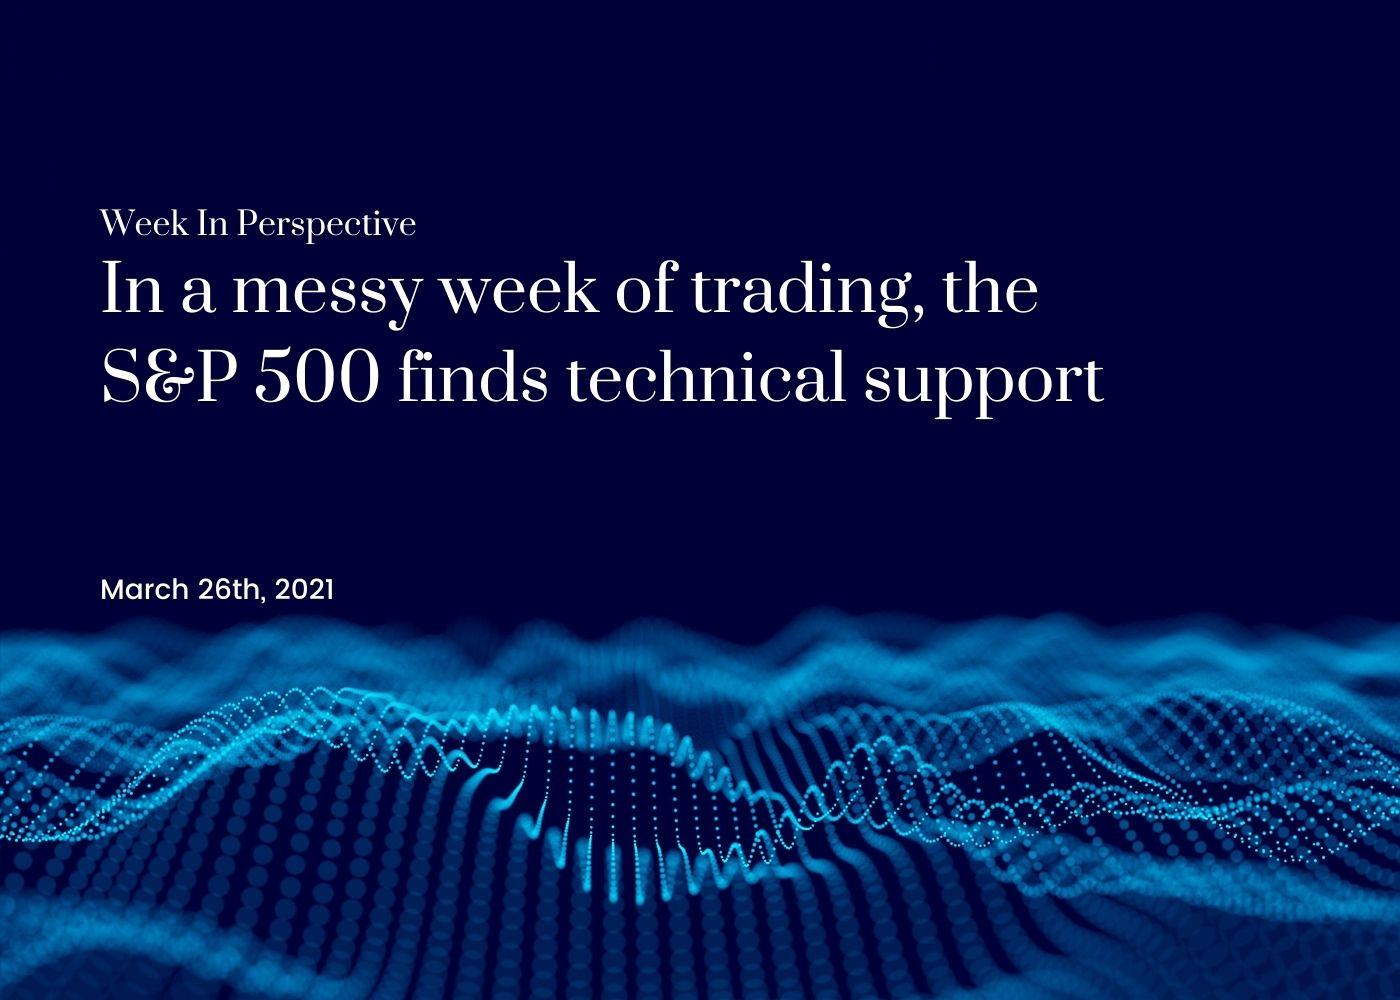 Week in Perspective for March 26, 2021: During a Messy Week the S&P500 find Tech Support Thumbnail